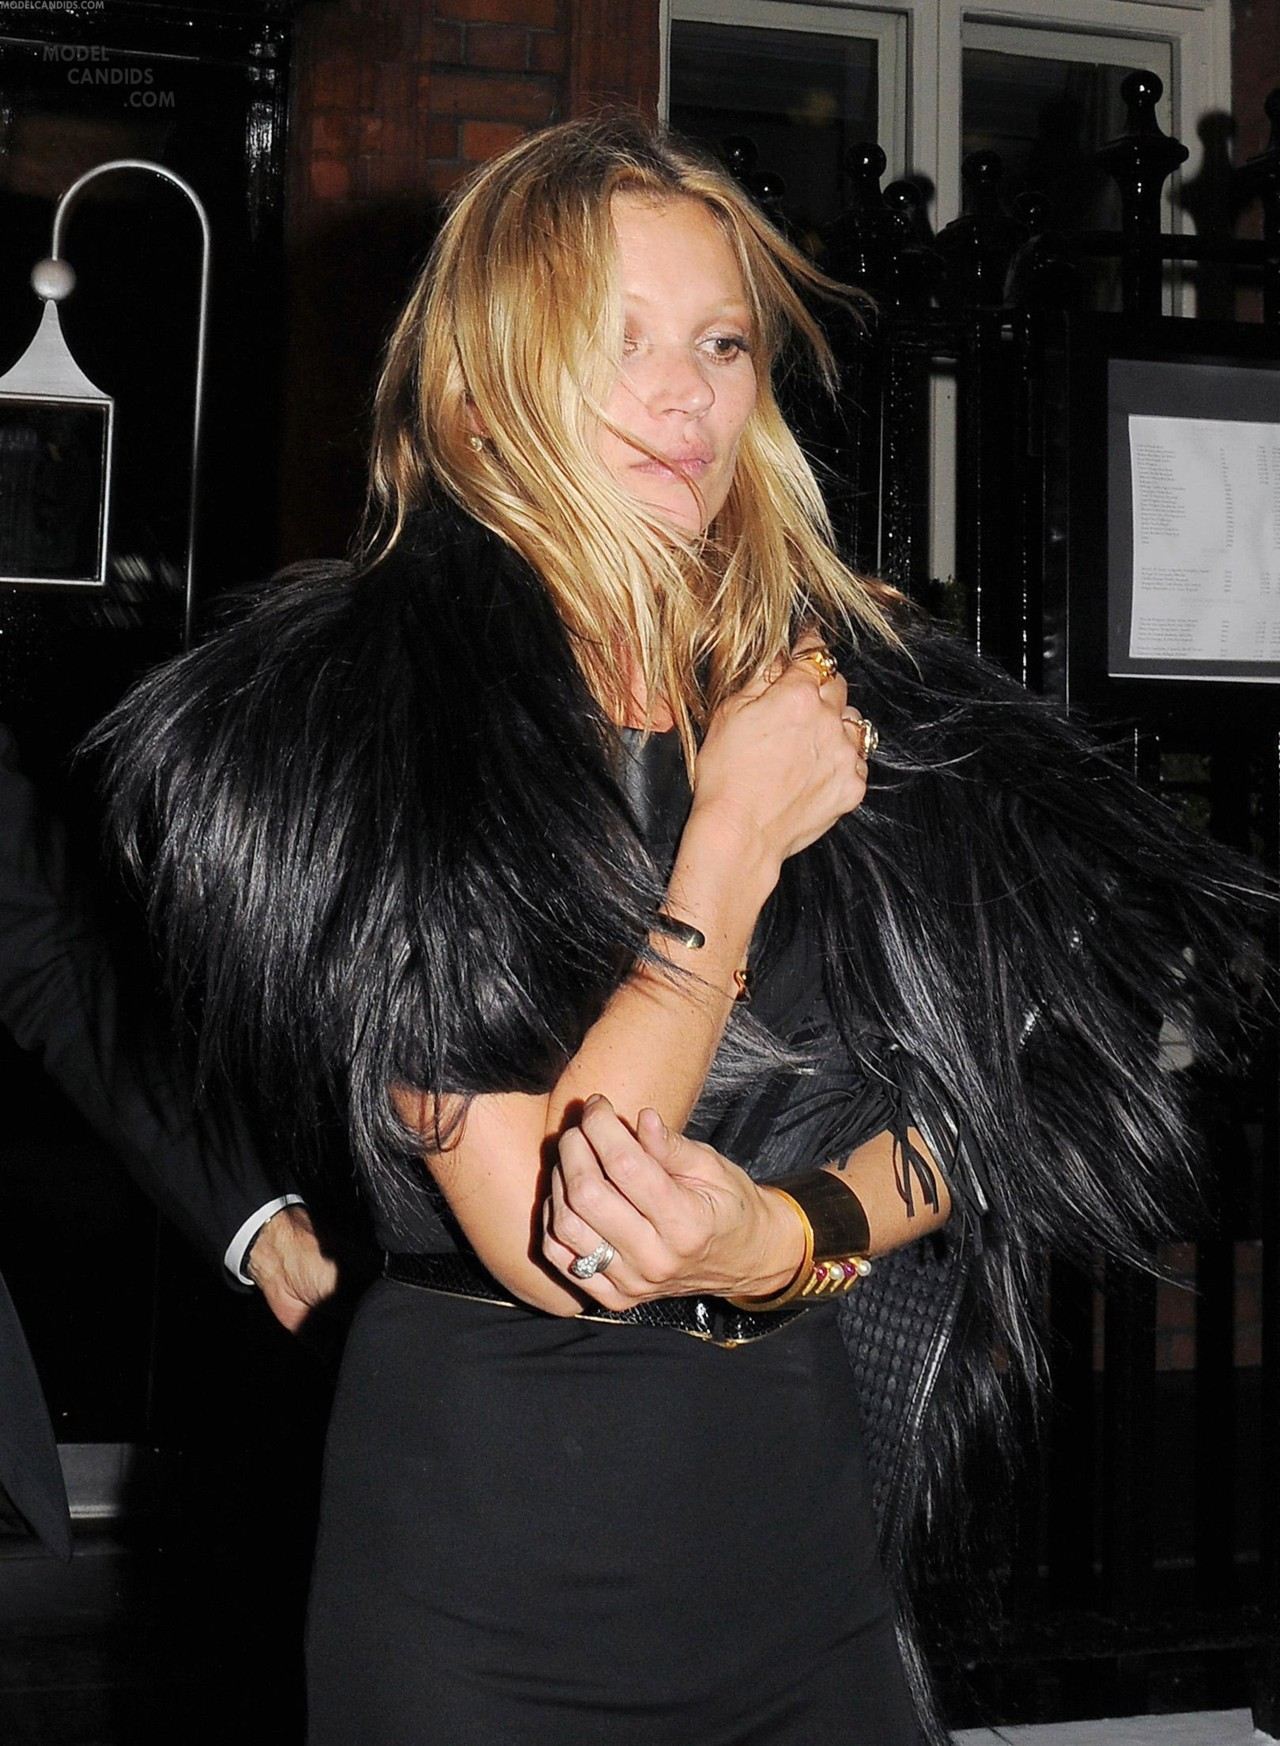 Kate Moss leaving the Maria Curie Cancer Care Fundraising Dinner at Claridges in London on May 15th 2012.